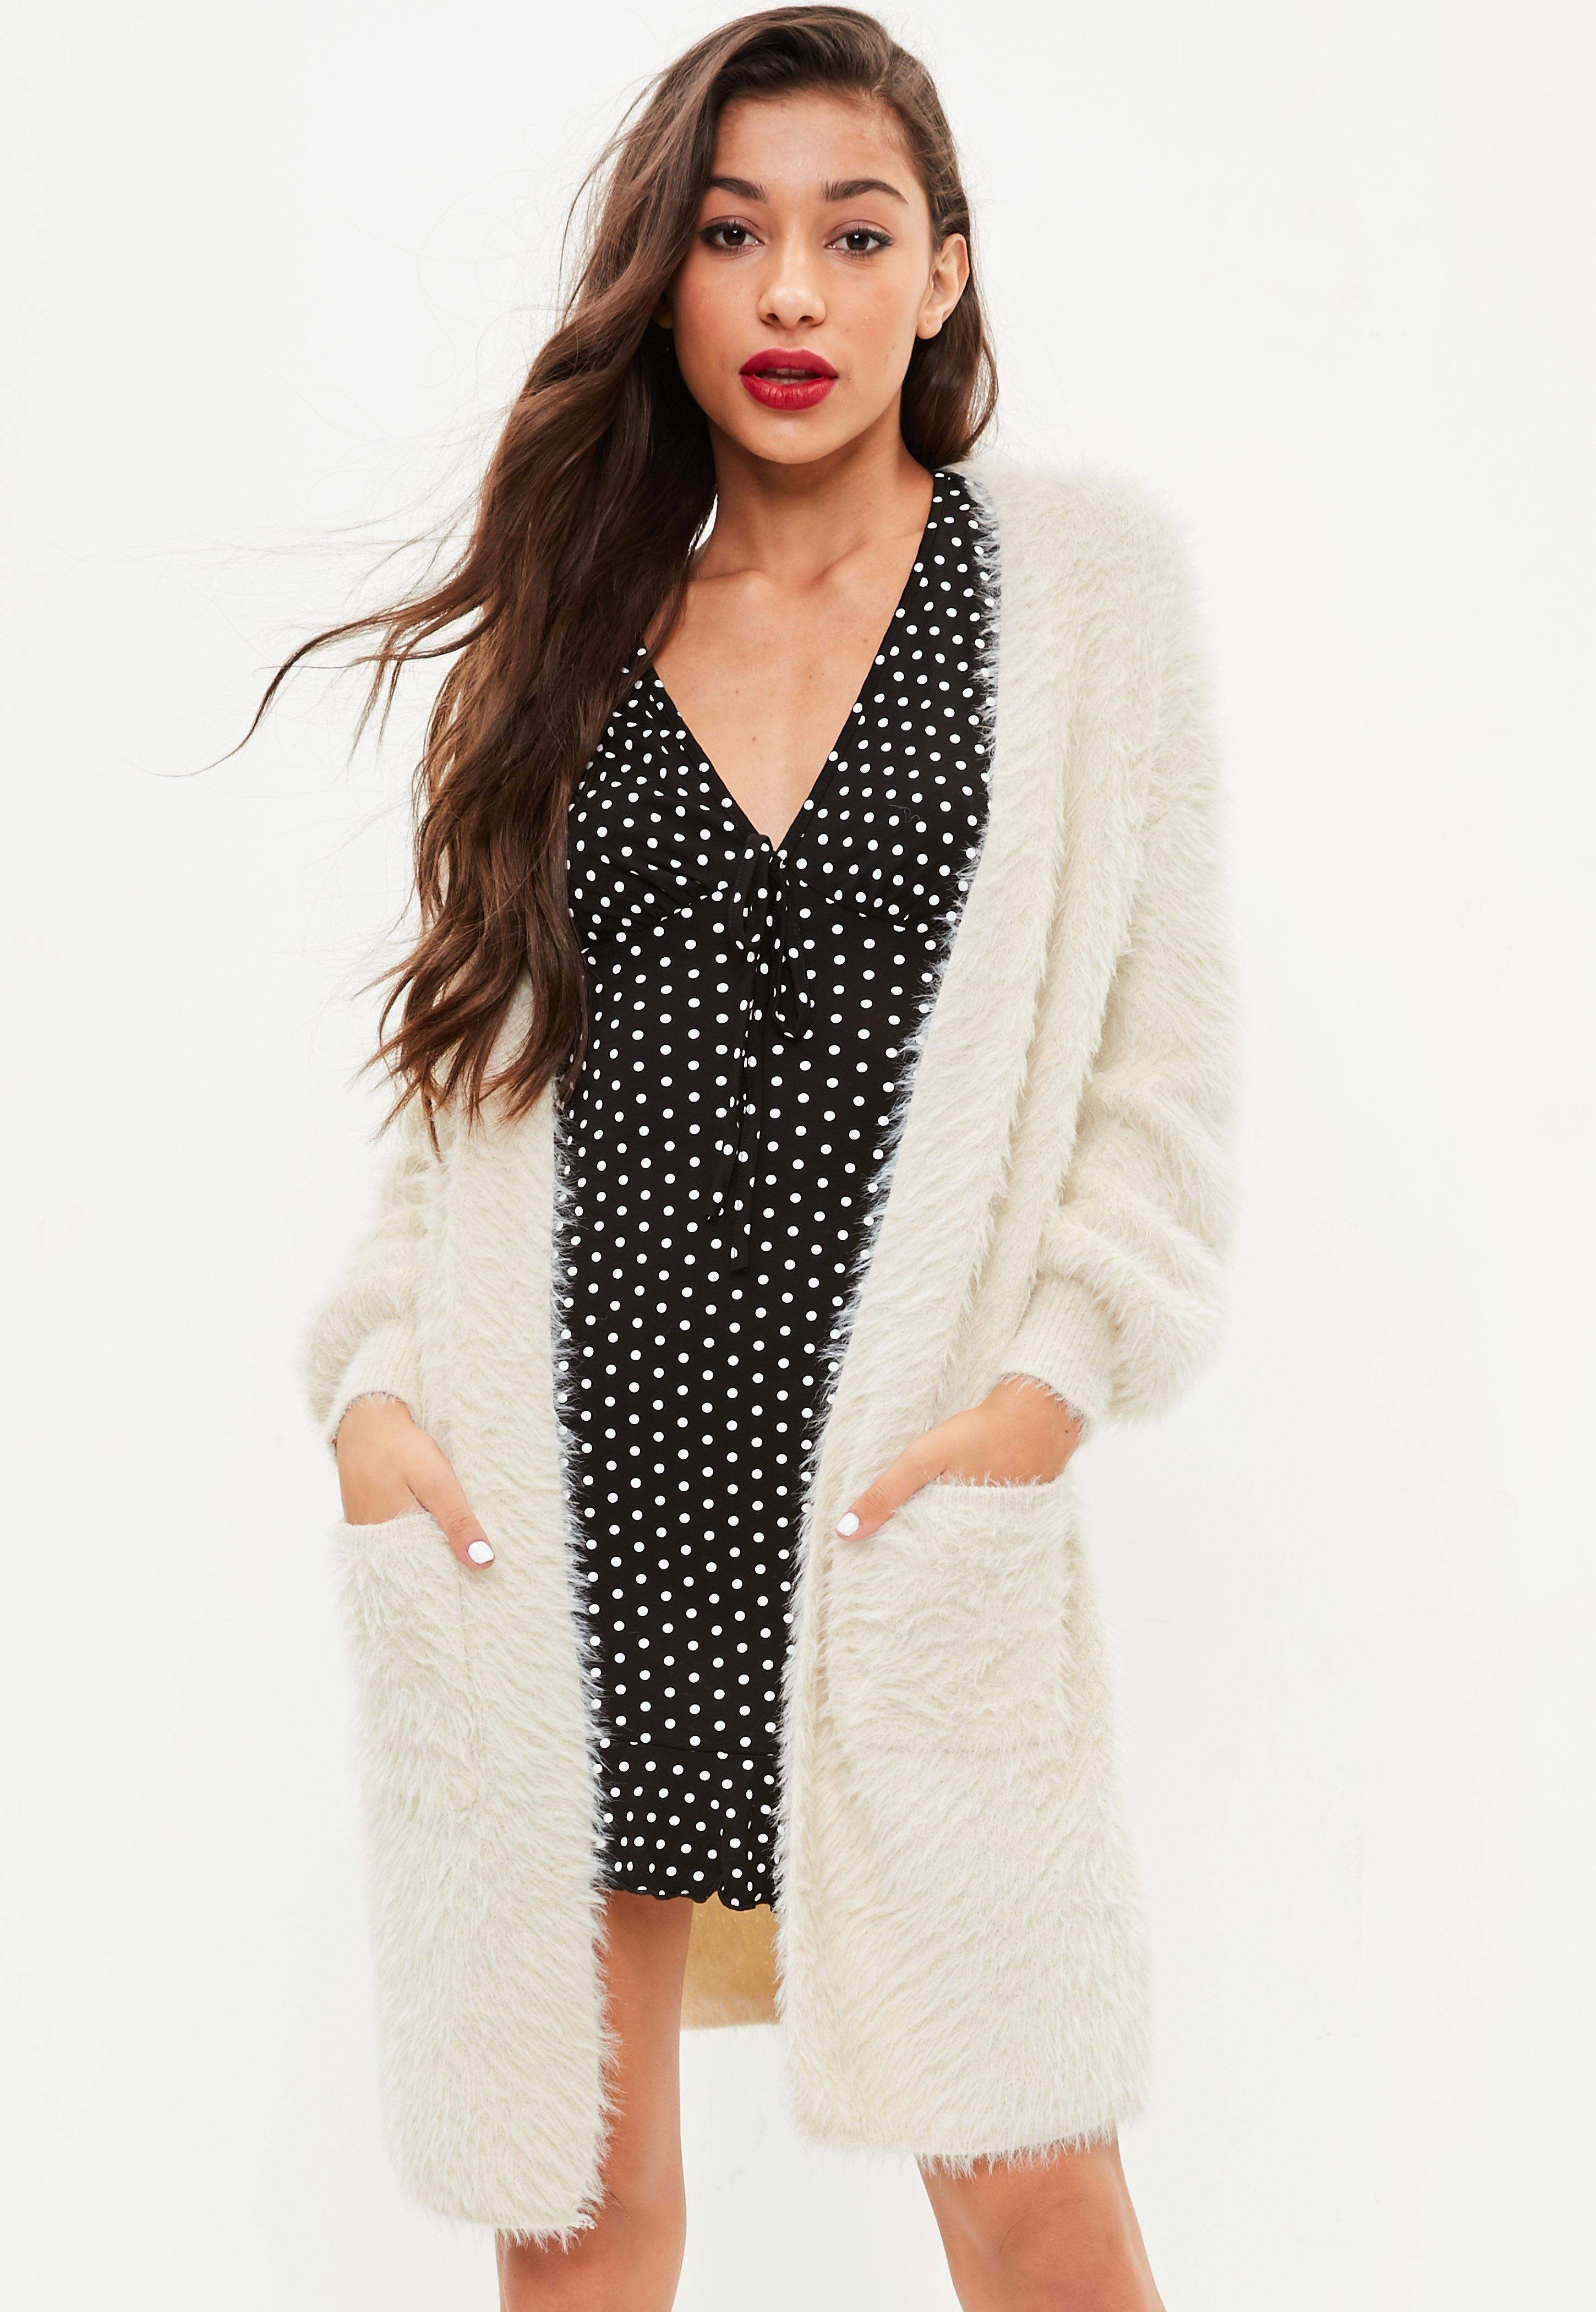 Knitwear - Women's Knitted Clothes Online | Missguided